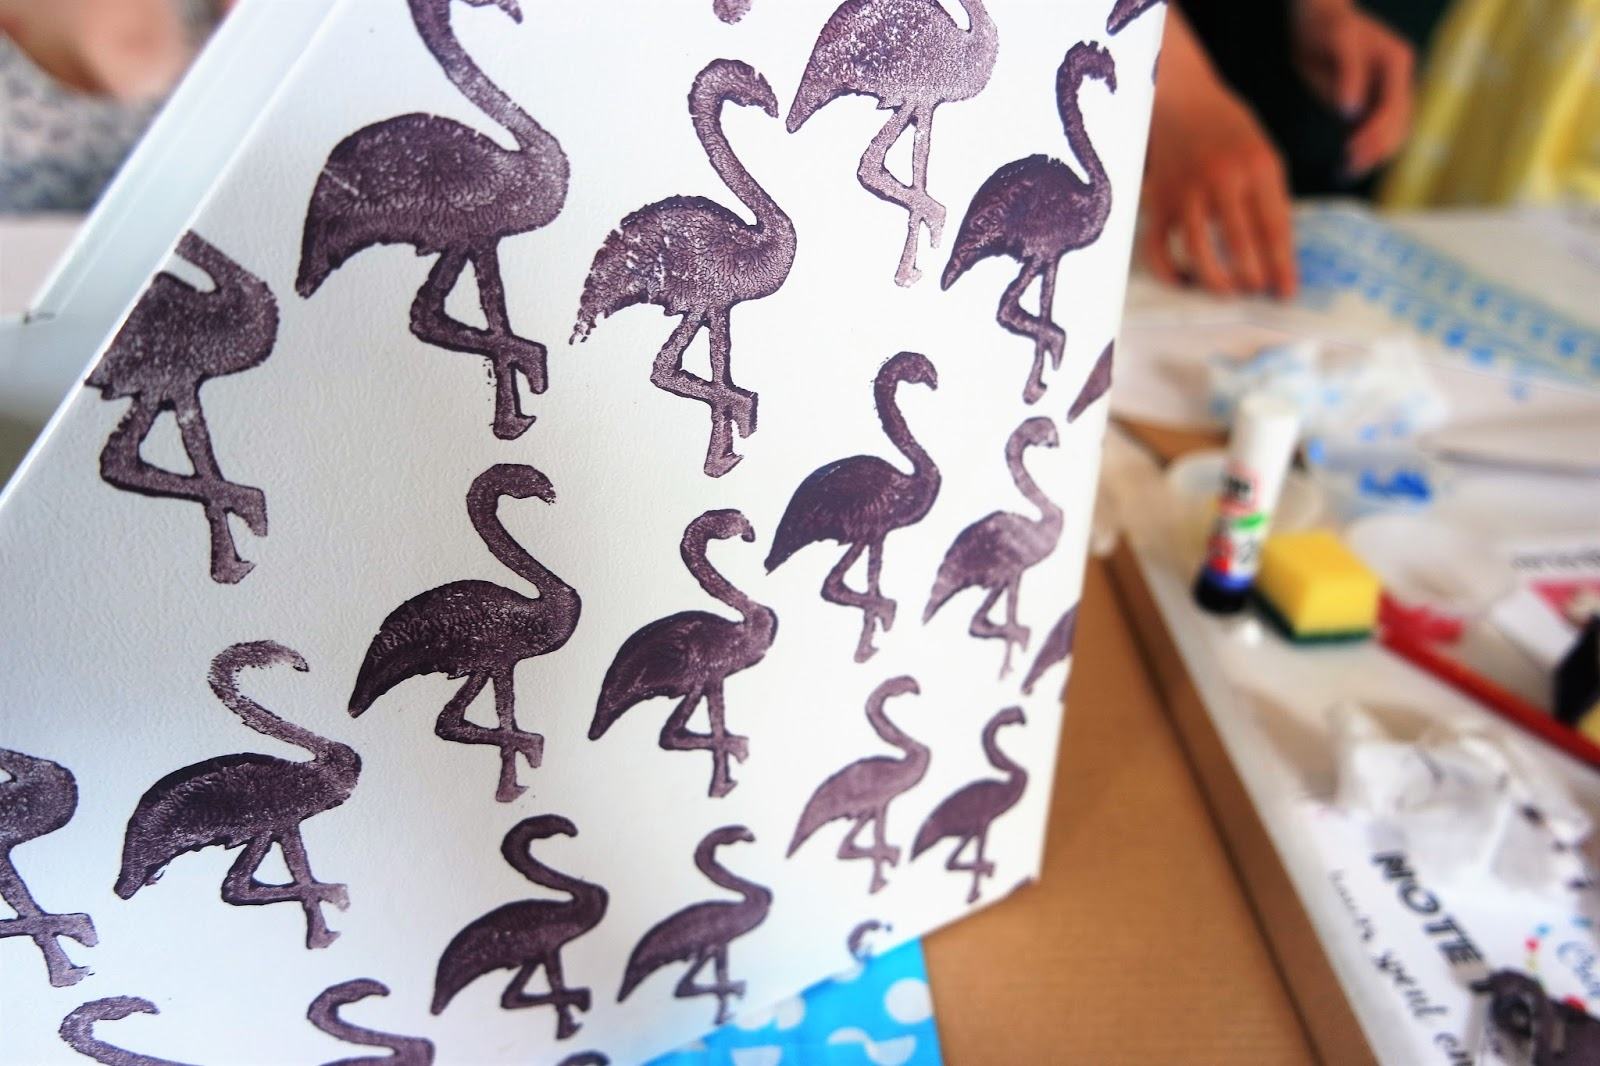 #vikingartyparty, a l'aise, stationery, bloggers, crafts, calligraphy, origami, block printing, flamingos, lumiere london